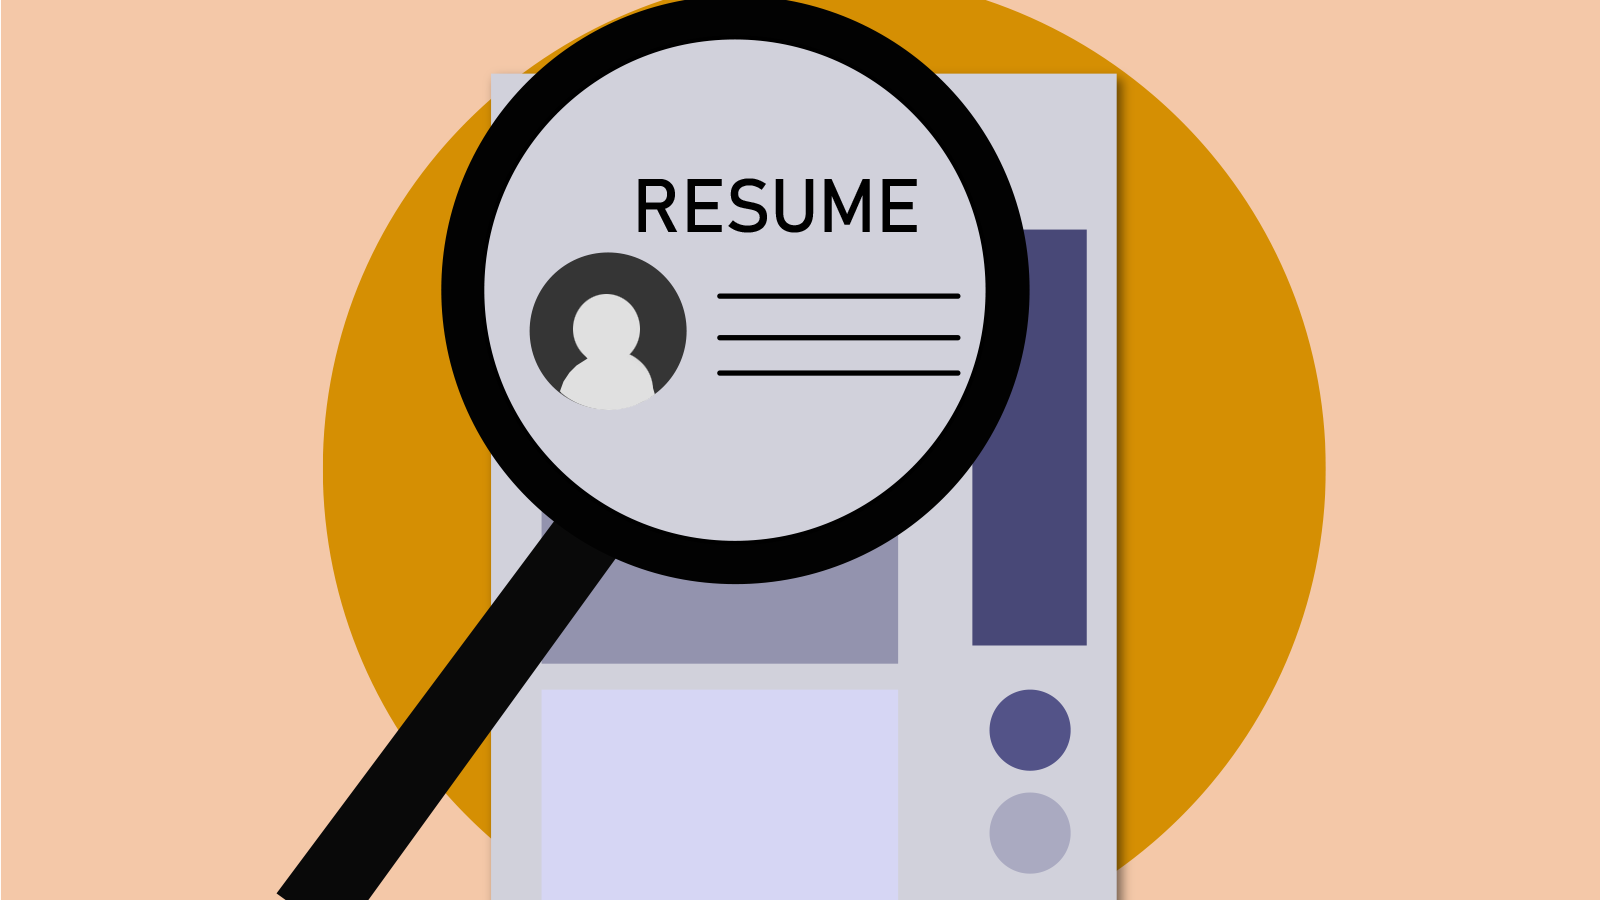 5 things you're definitely missing on your resume